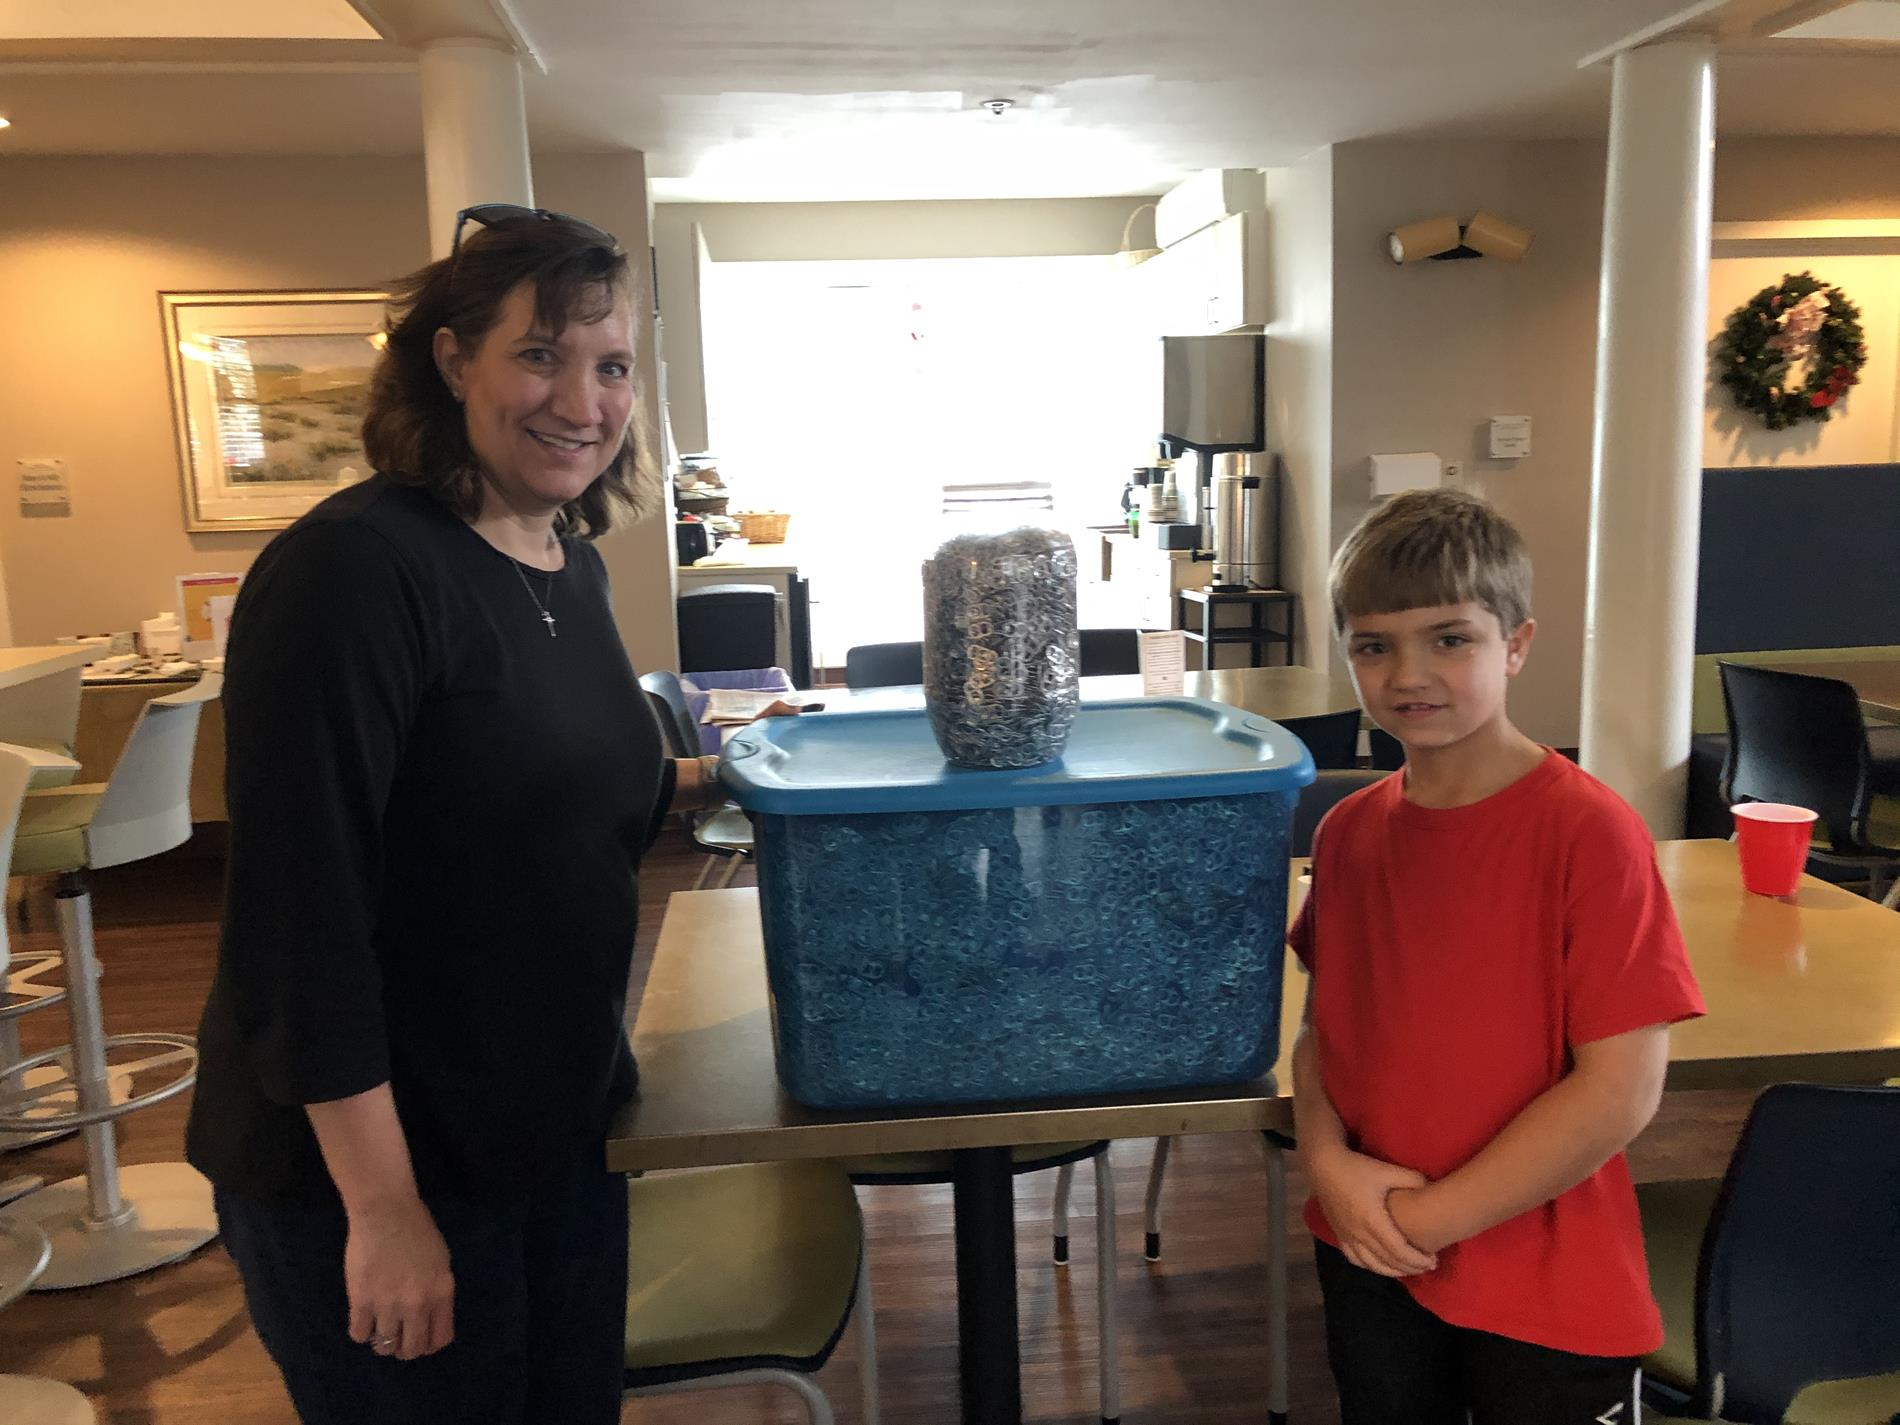 Picture of can tabs being delivered to the Ronald McDonald House.